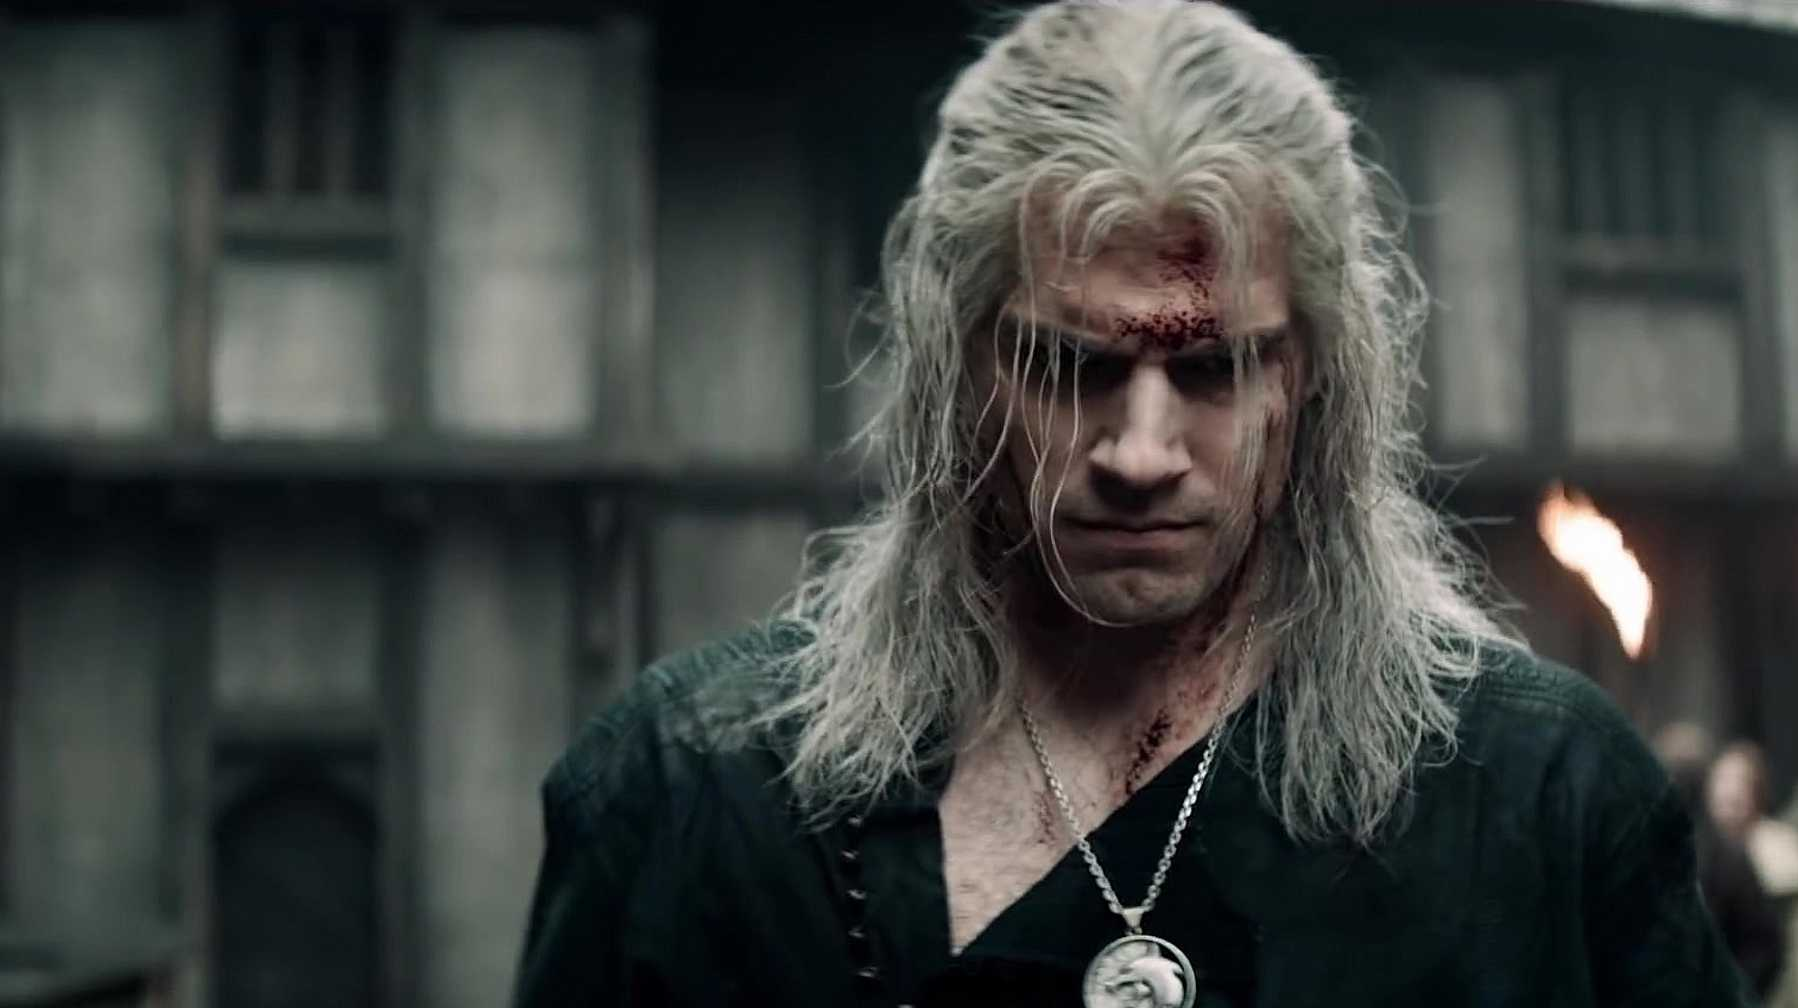 The Witcher Casts A Pair Of New Witchers For Season 2